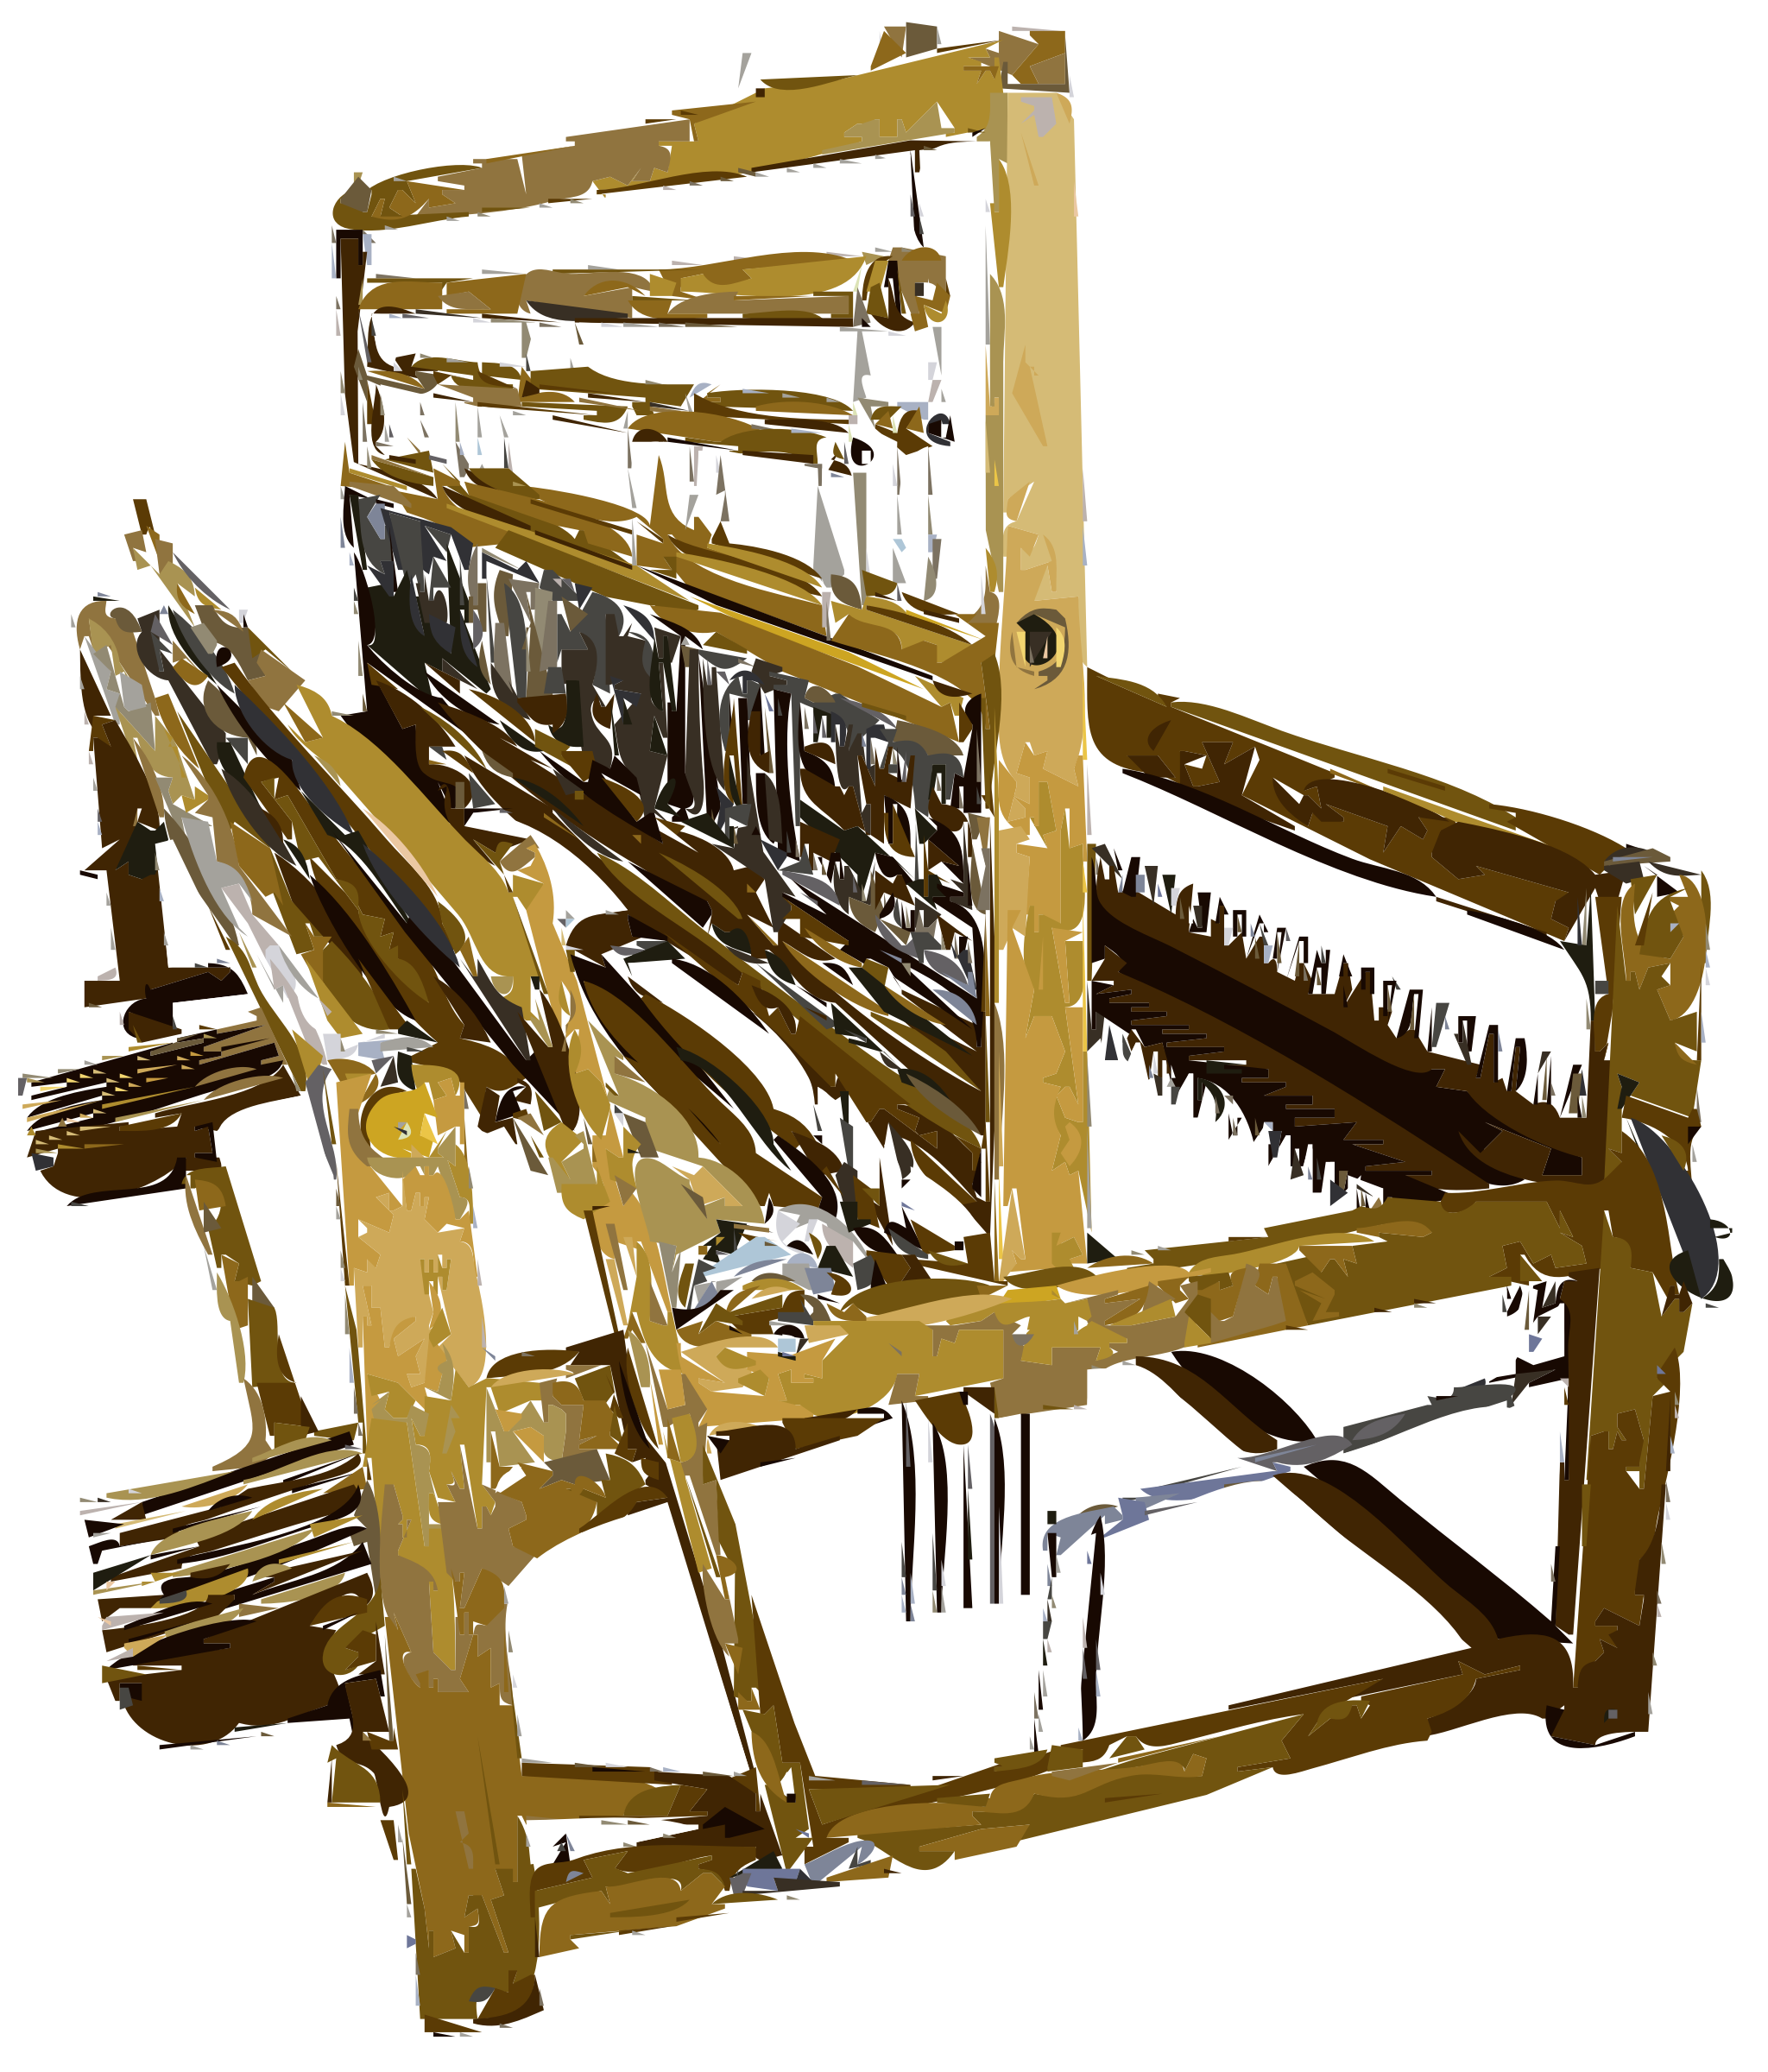 Old Fashioned Fabric Loom Vectorized by rejon